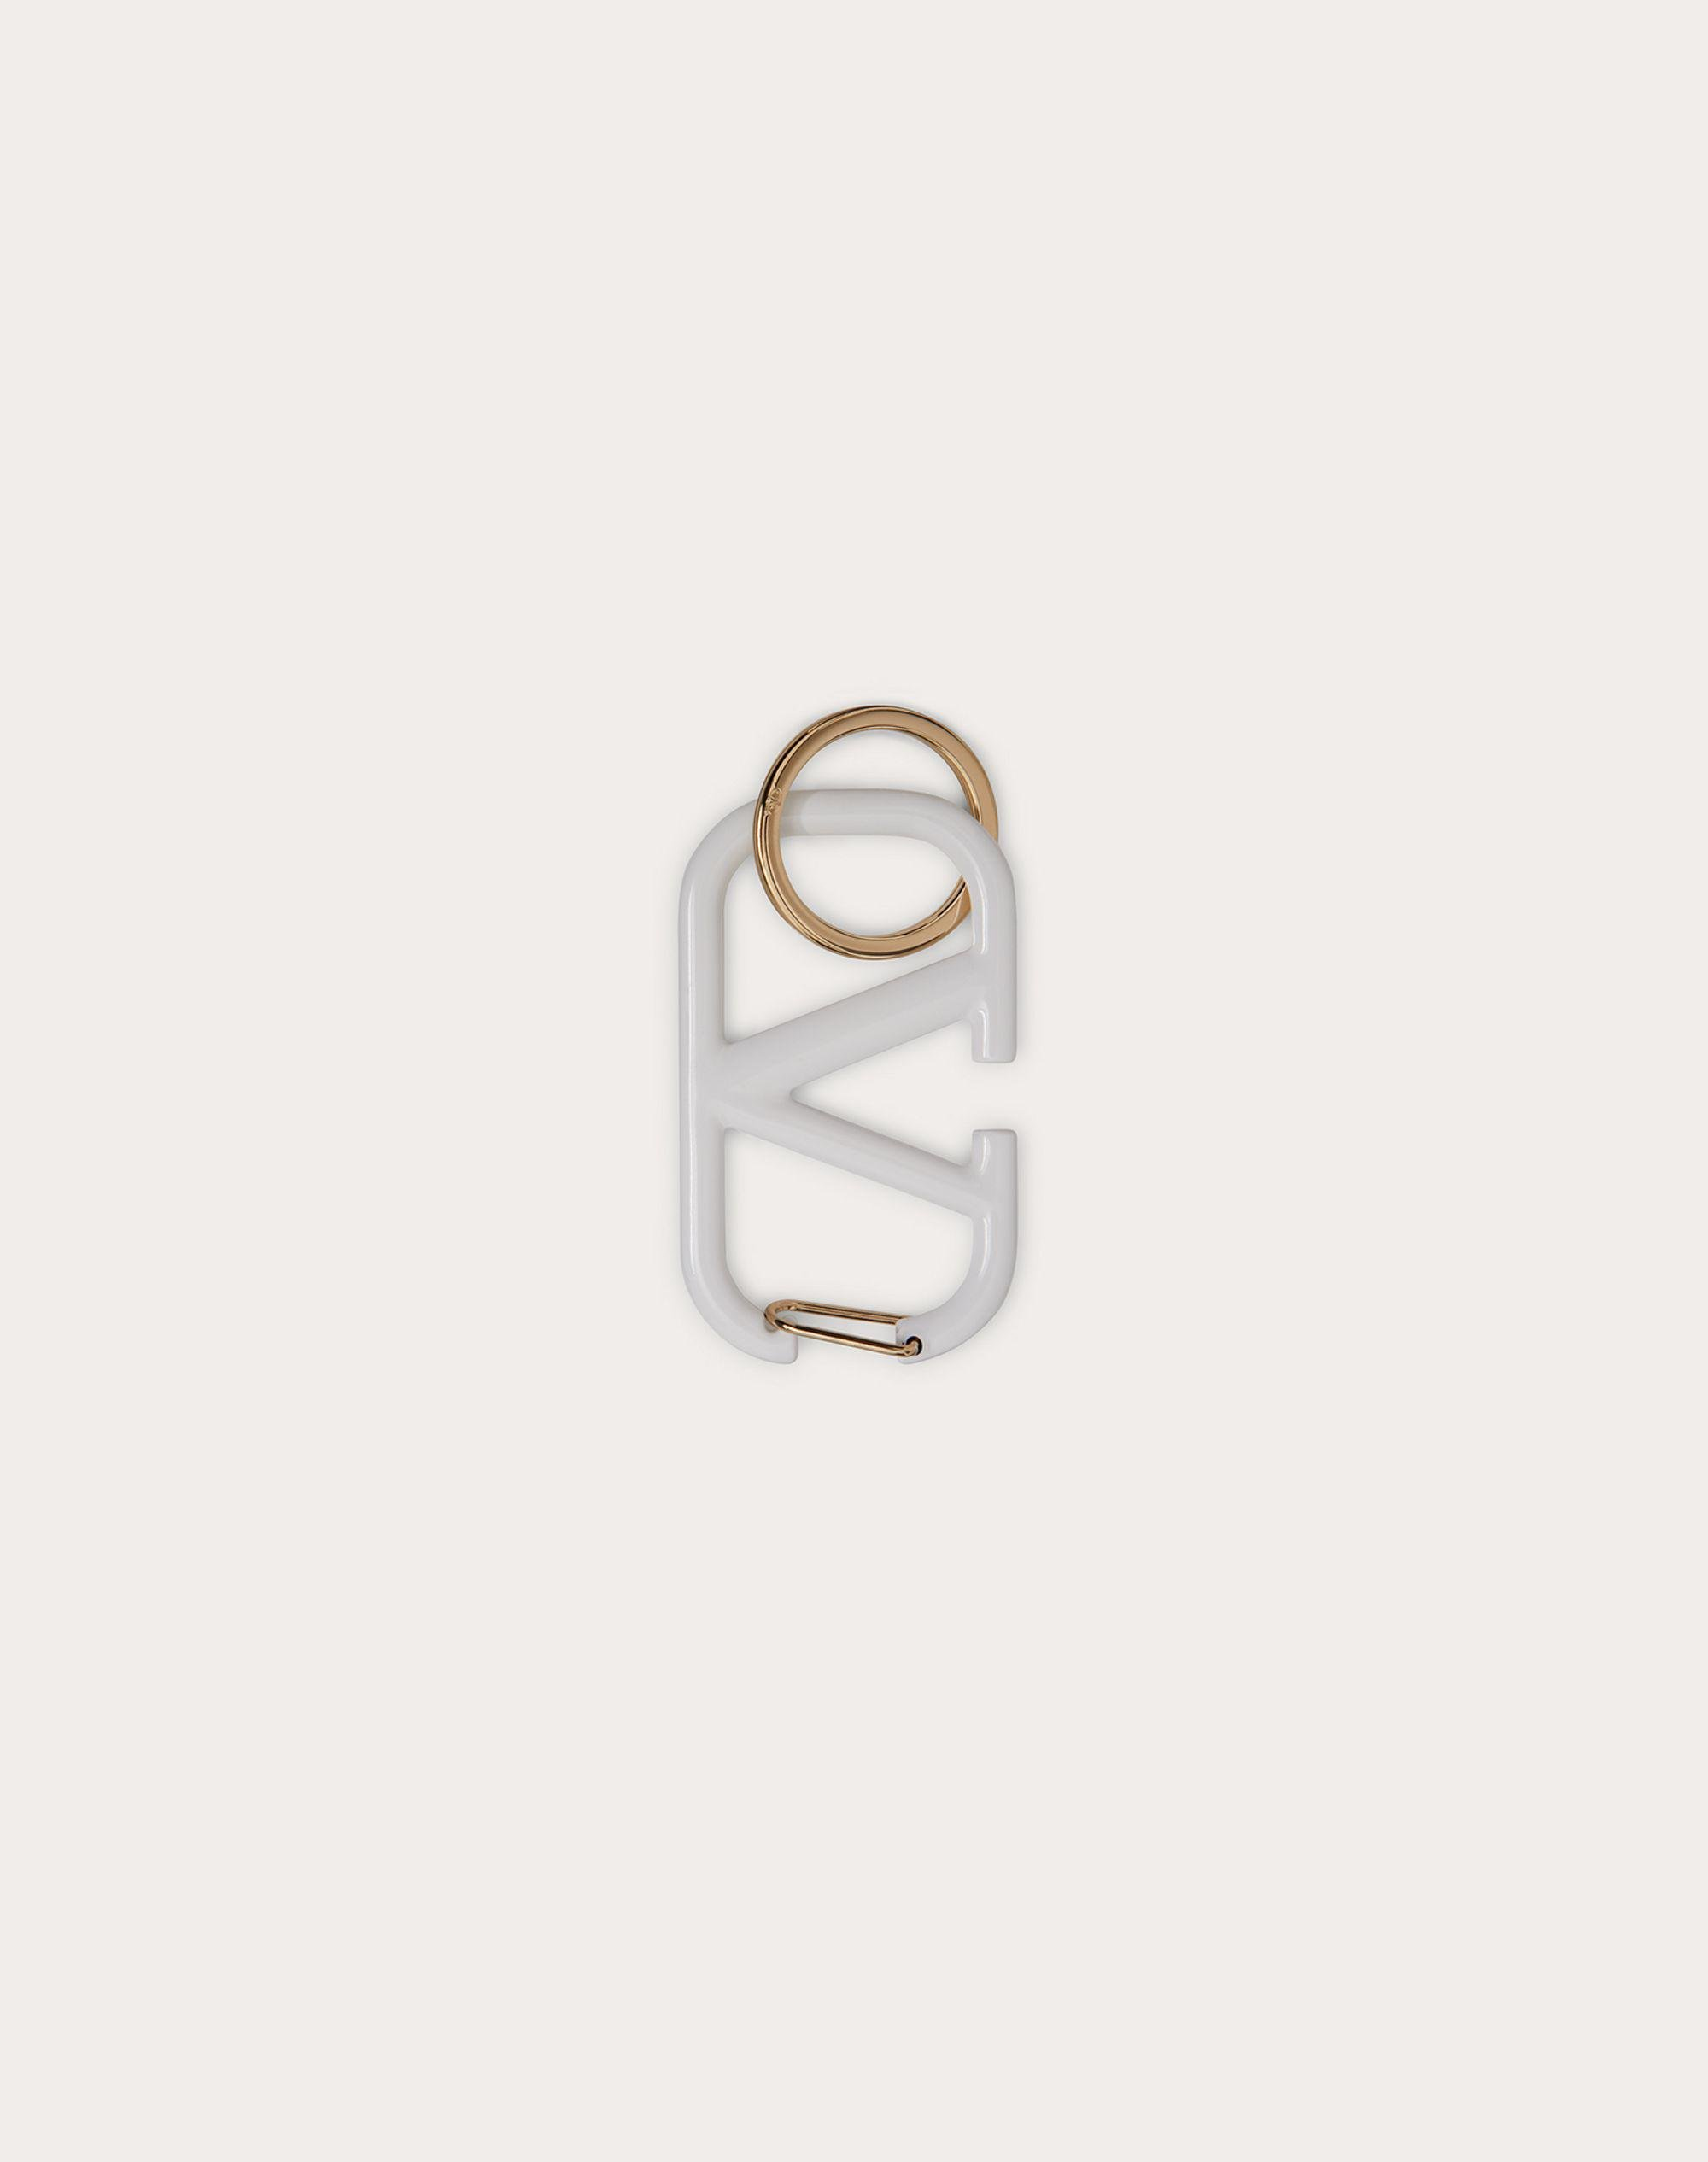 VLOGO SIGNATURE KEYCHAIN IN LACQUERED METAL 0